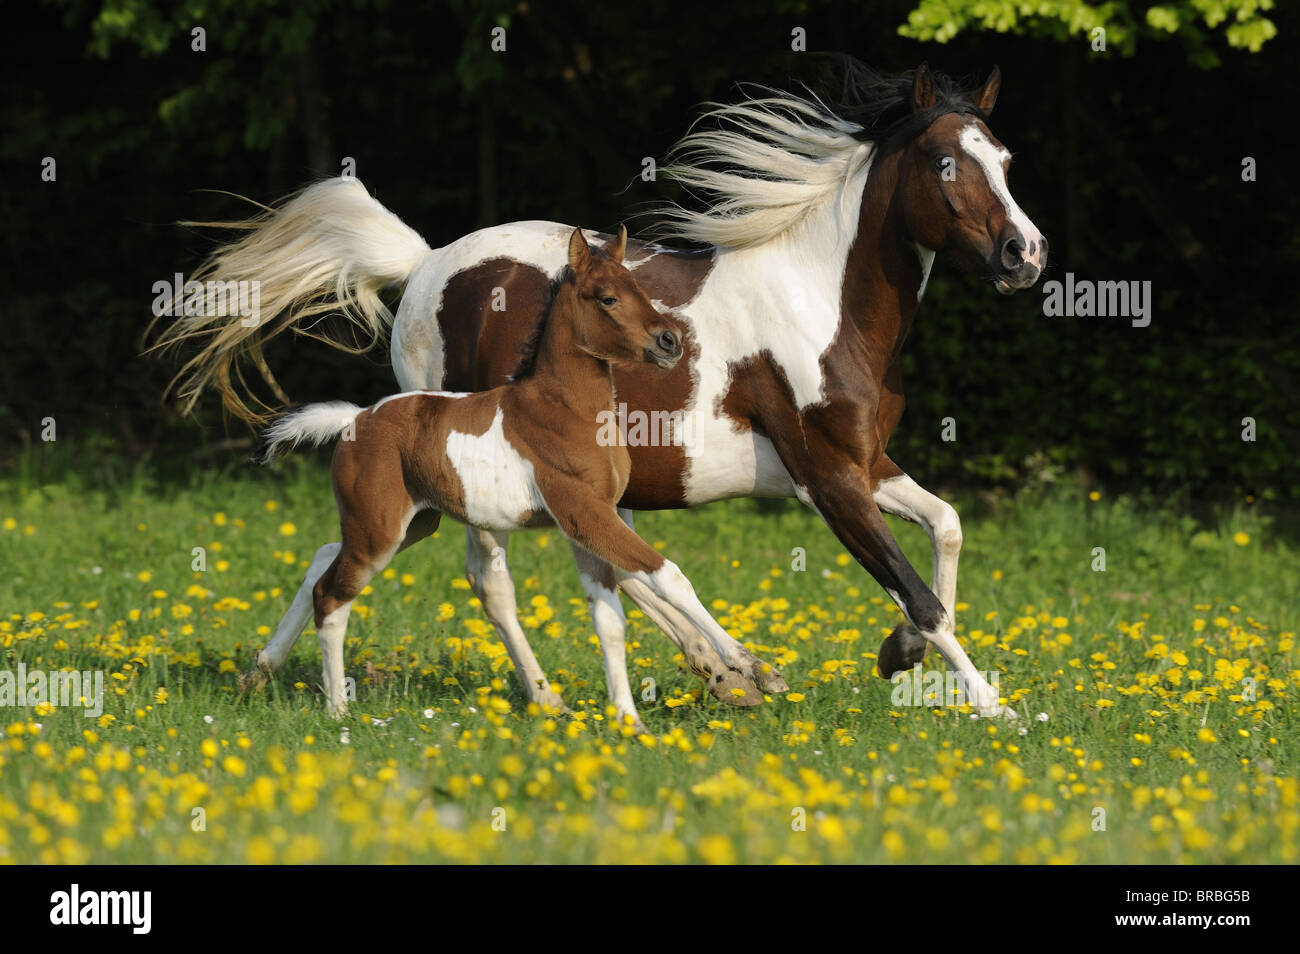 Lewitzer Horse (Equus ferus caballus), mare with foal in a gallop on a pasture. - Stock Image